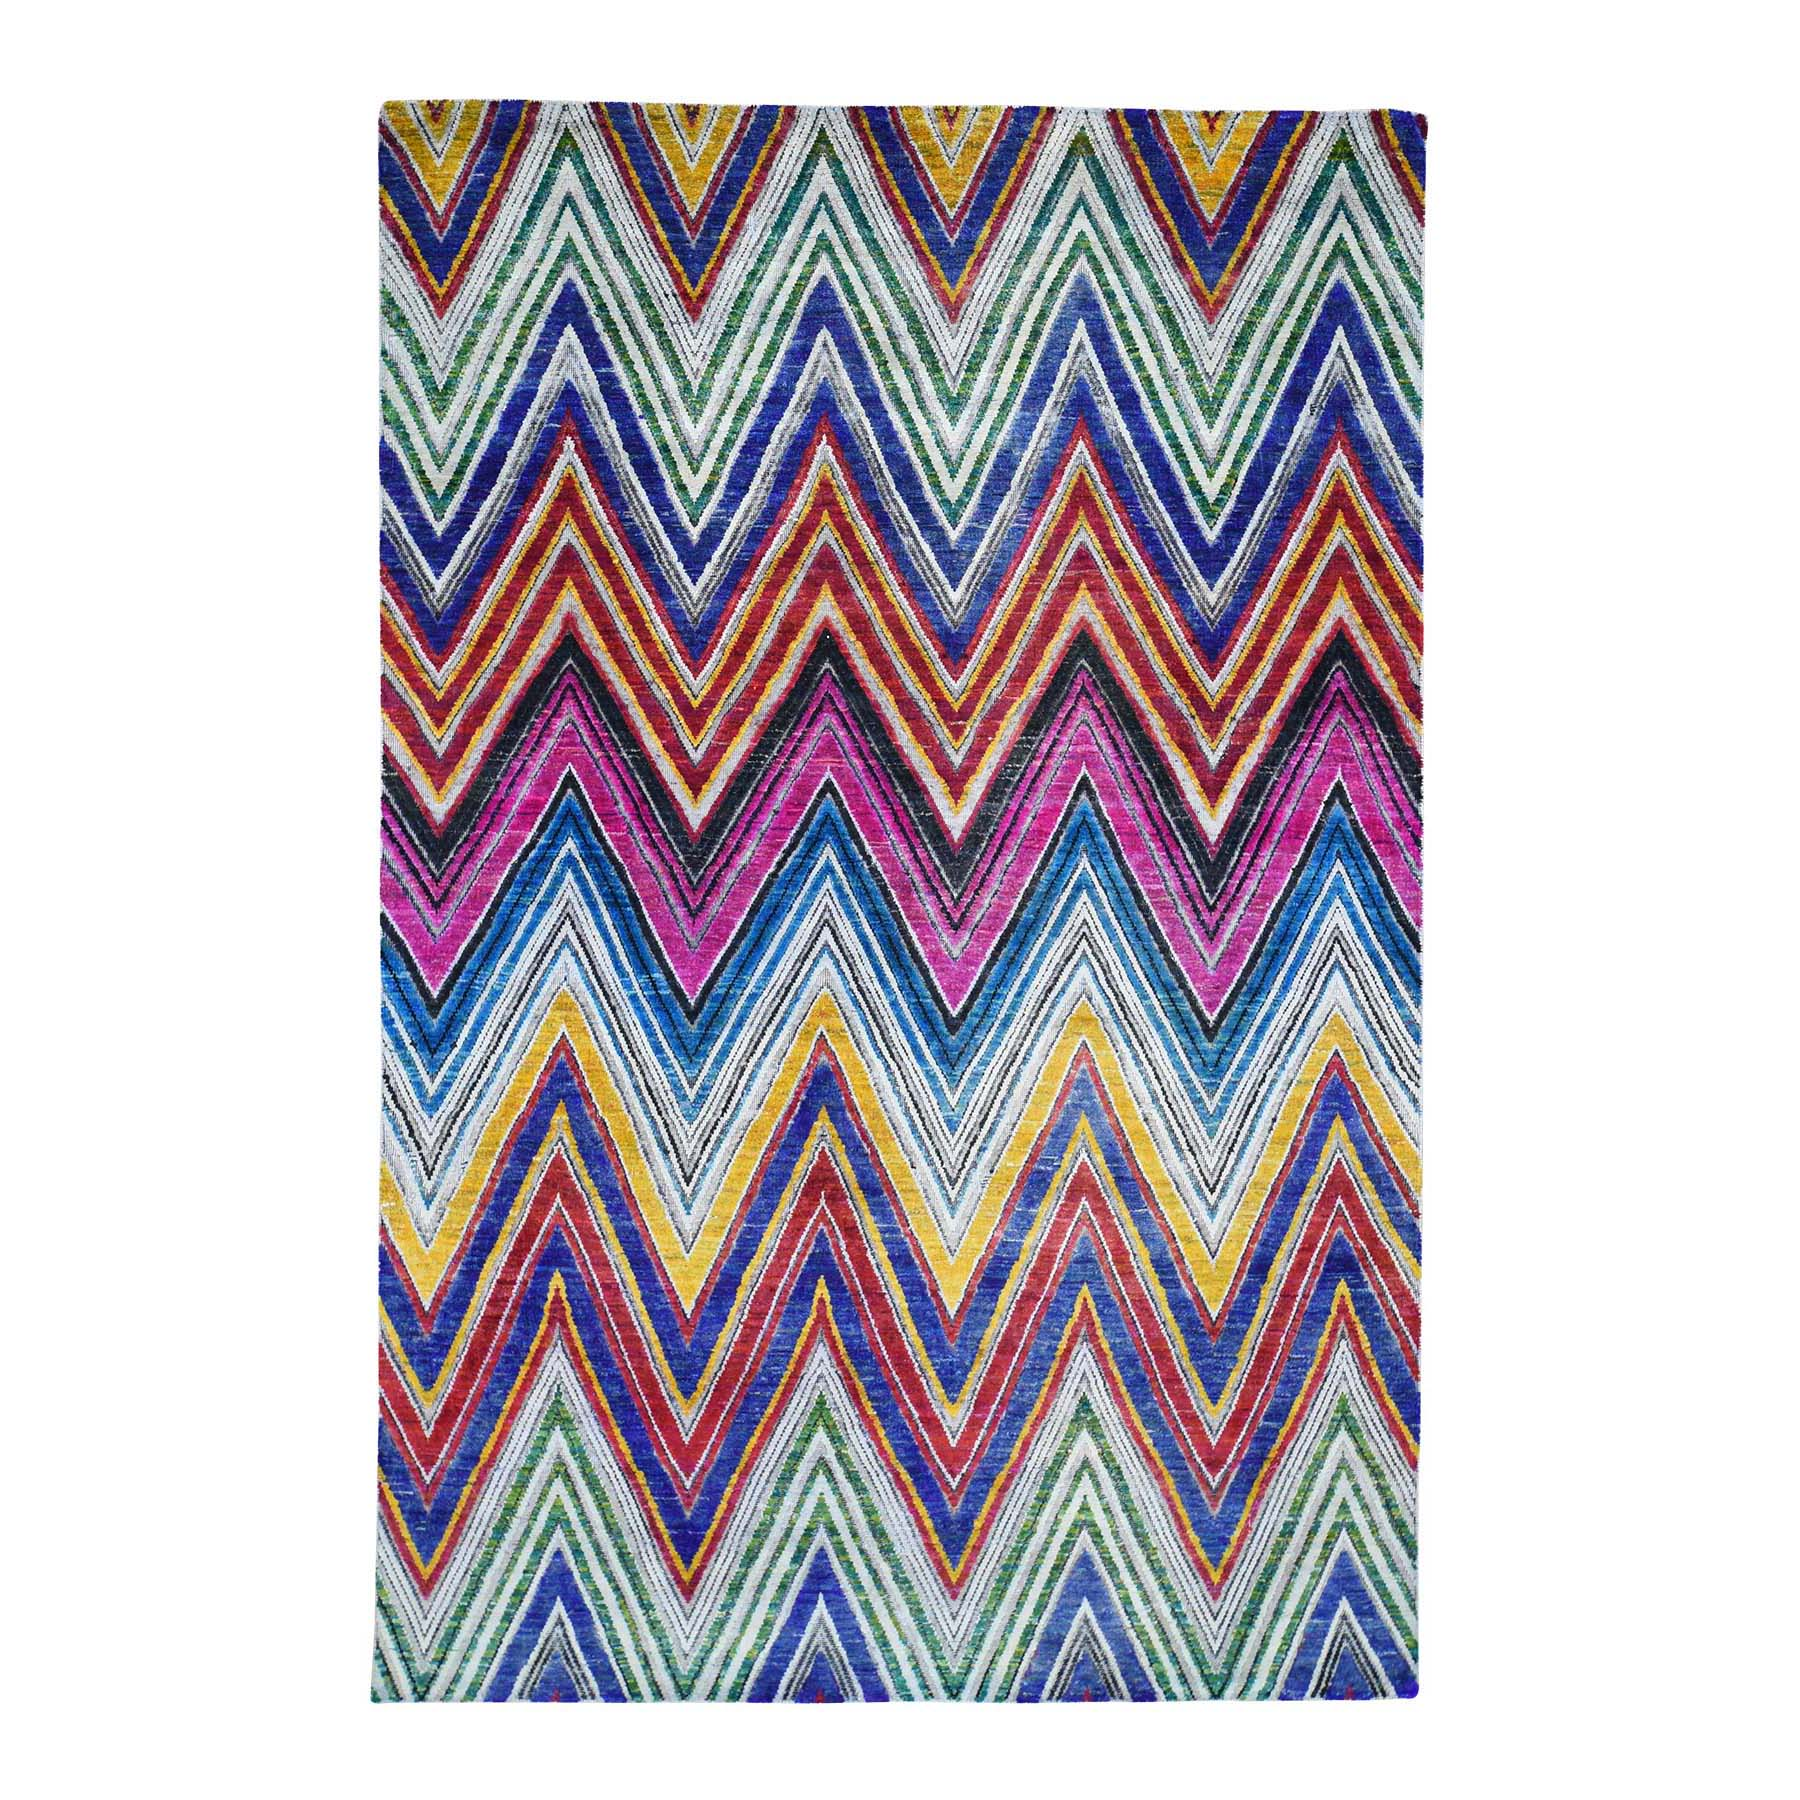 Mid Century Modern Collection Hand Knotted Multicolored Rug No: 0191714